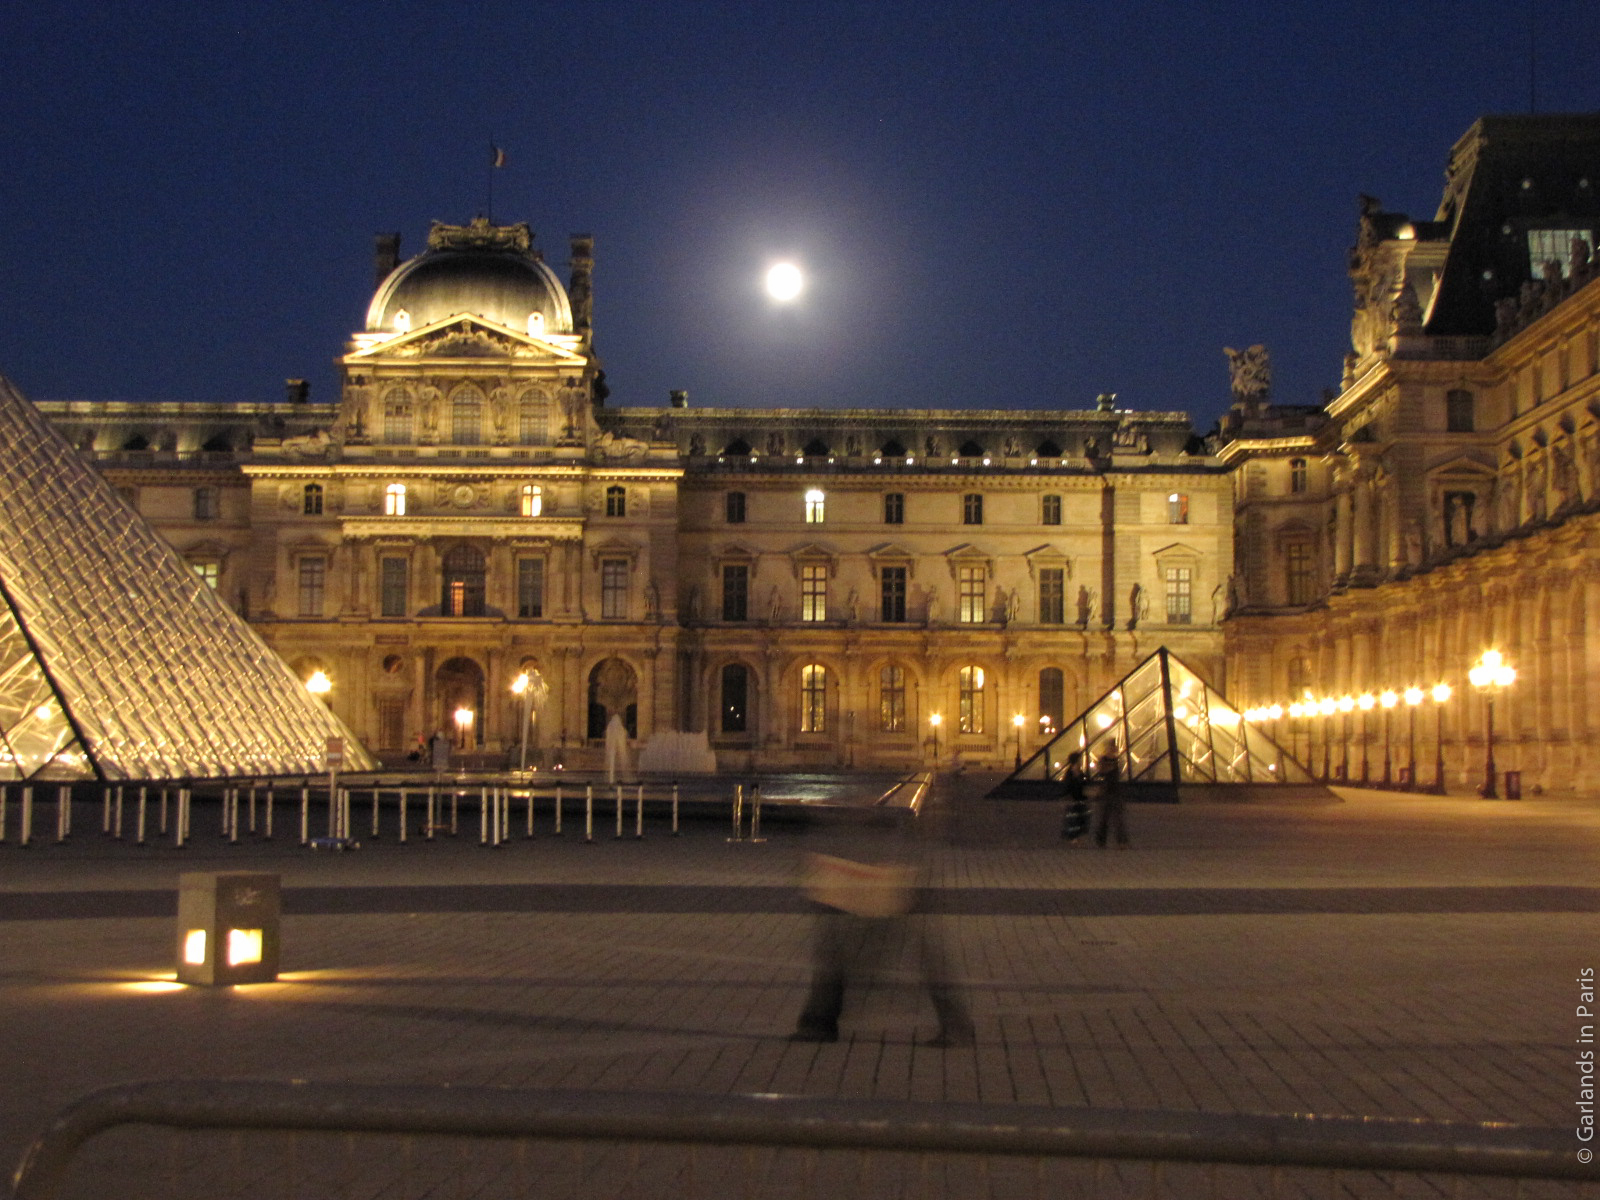 Full Moon Louvre Museum Paris